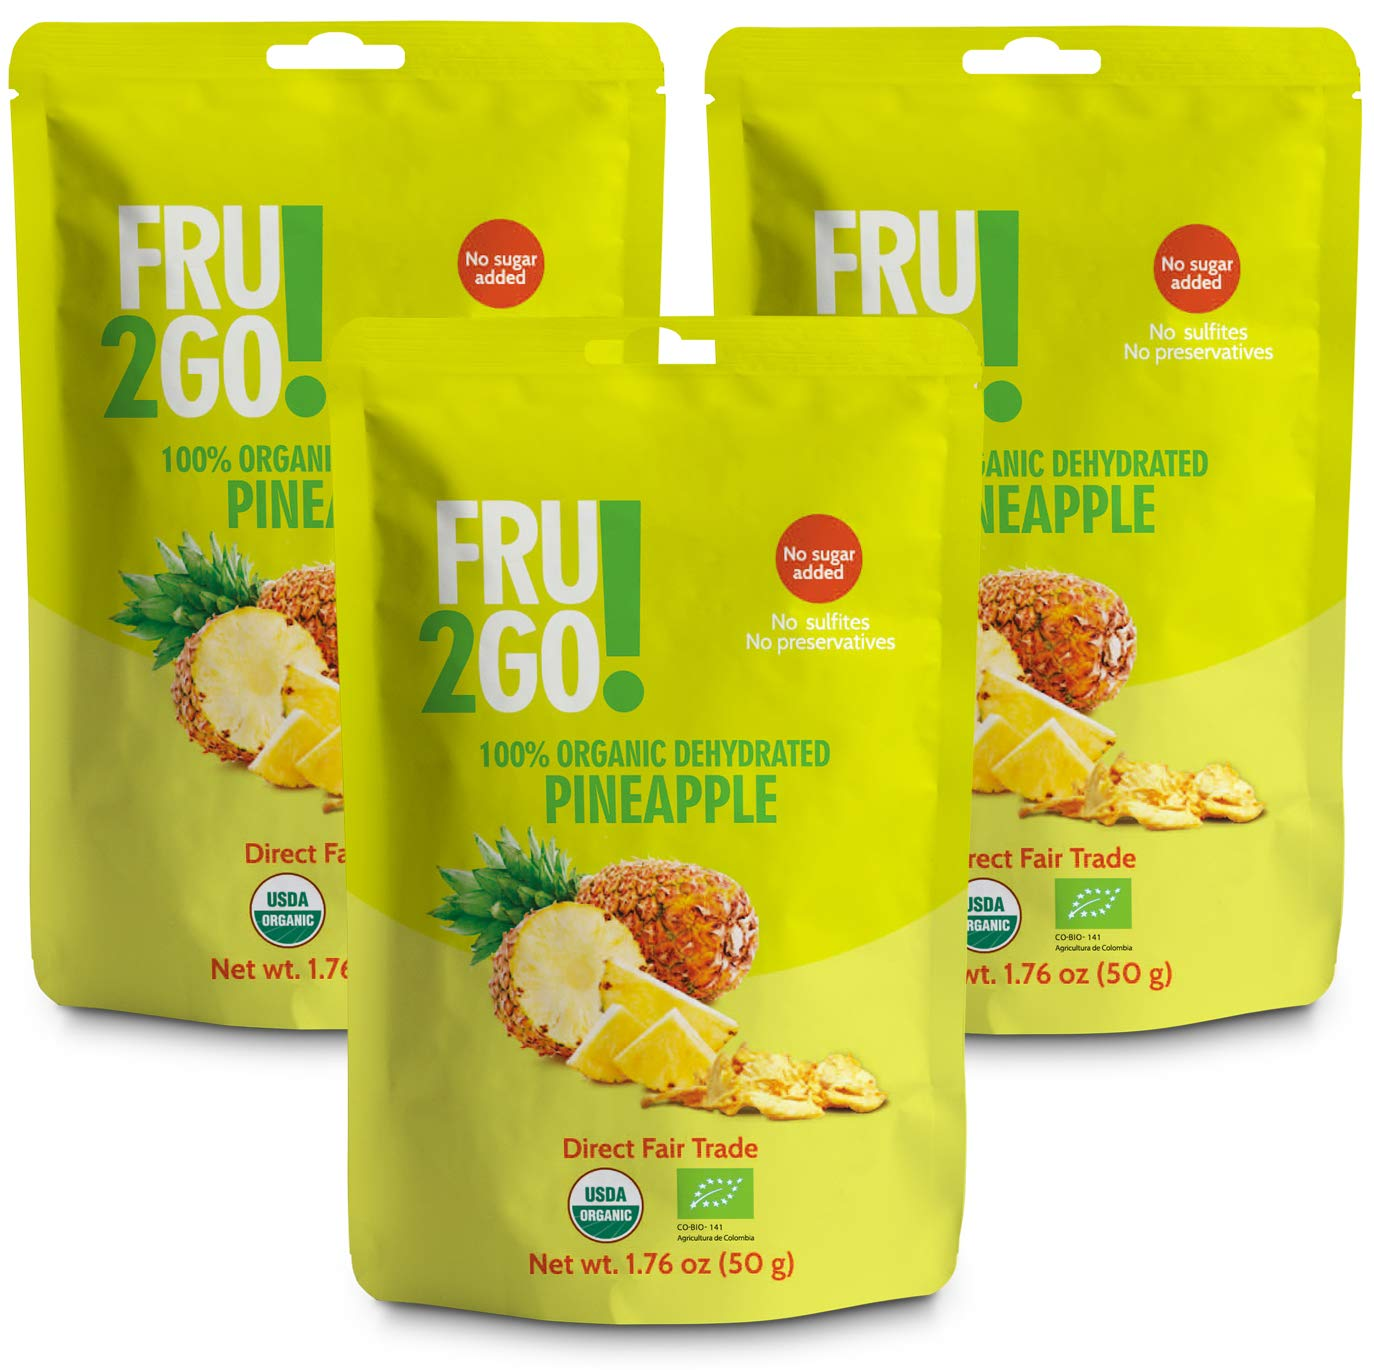 Fru2Go Organic, Dehydrated Pineapple Slices - 1.76 oz (Pack of 3) - No Sugar Added - All-Natural Pineapples - Raw - Direct Fair Trade Fruit - from Colombia by Fru2Go (Image #1)